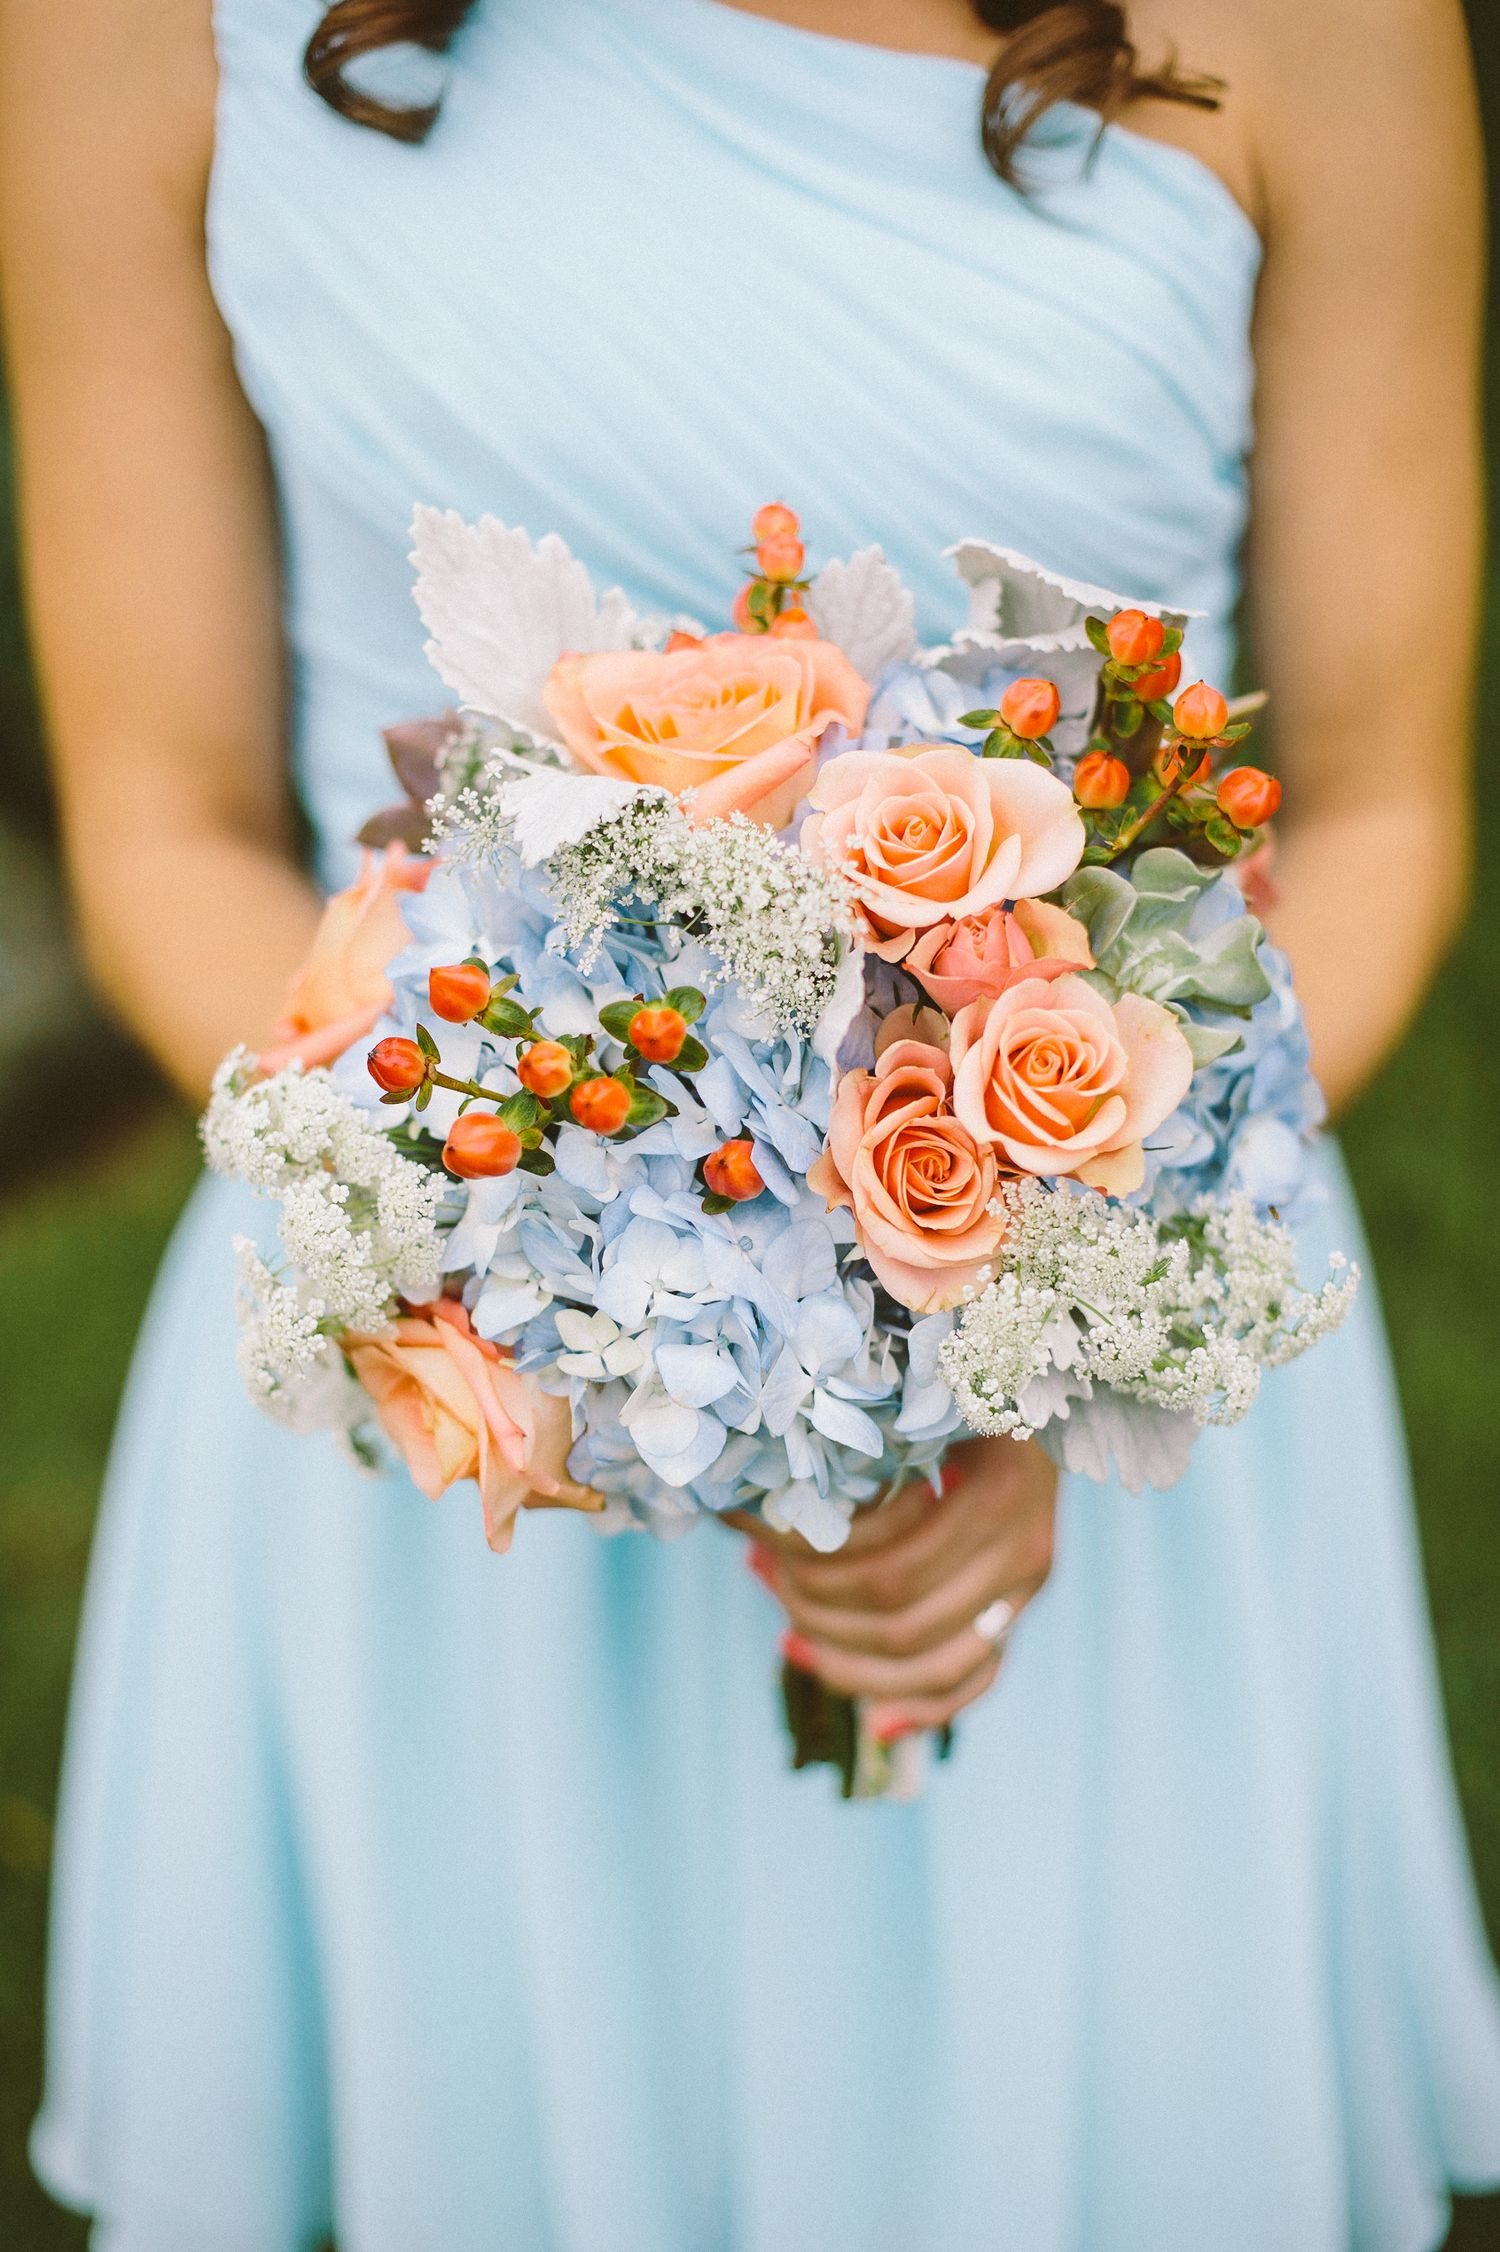 Light blue dress for wedding  Baby Blue Bridesmaids with Peach Flowers in Bouquet  by Preston